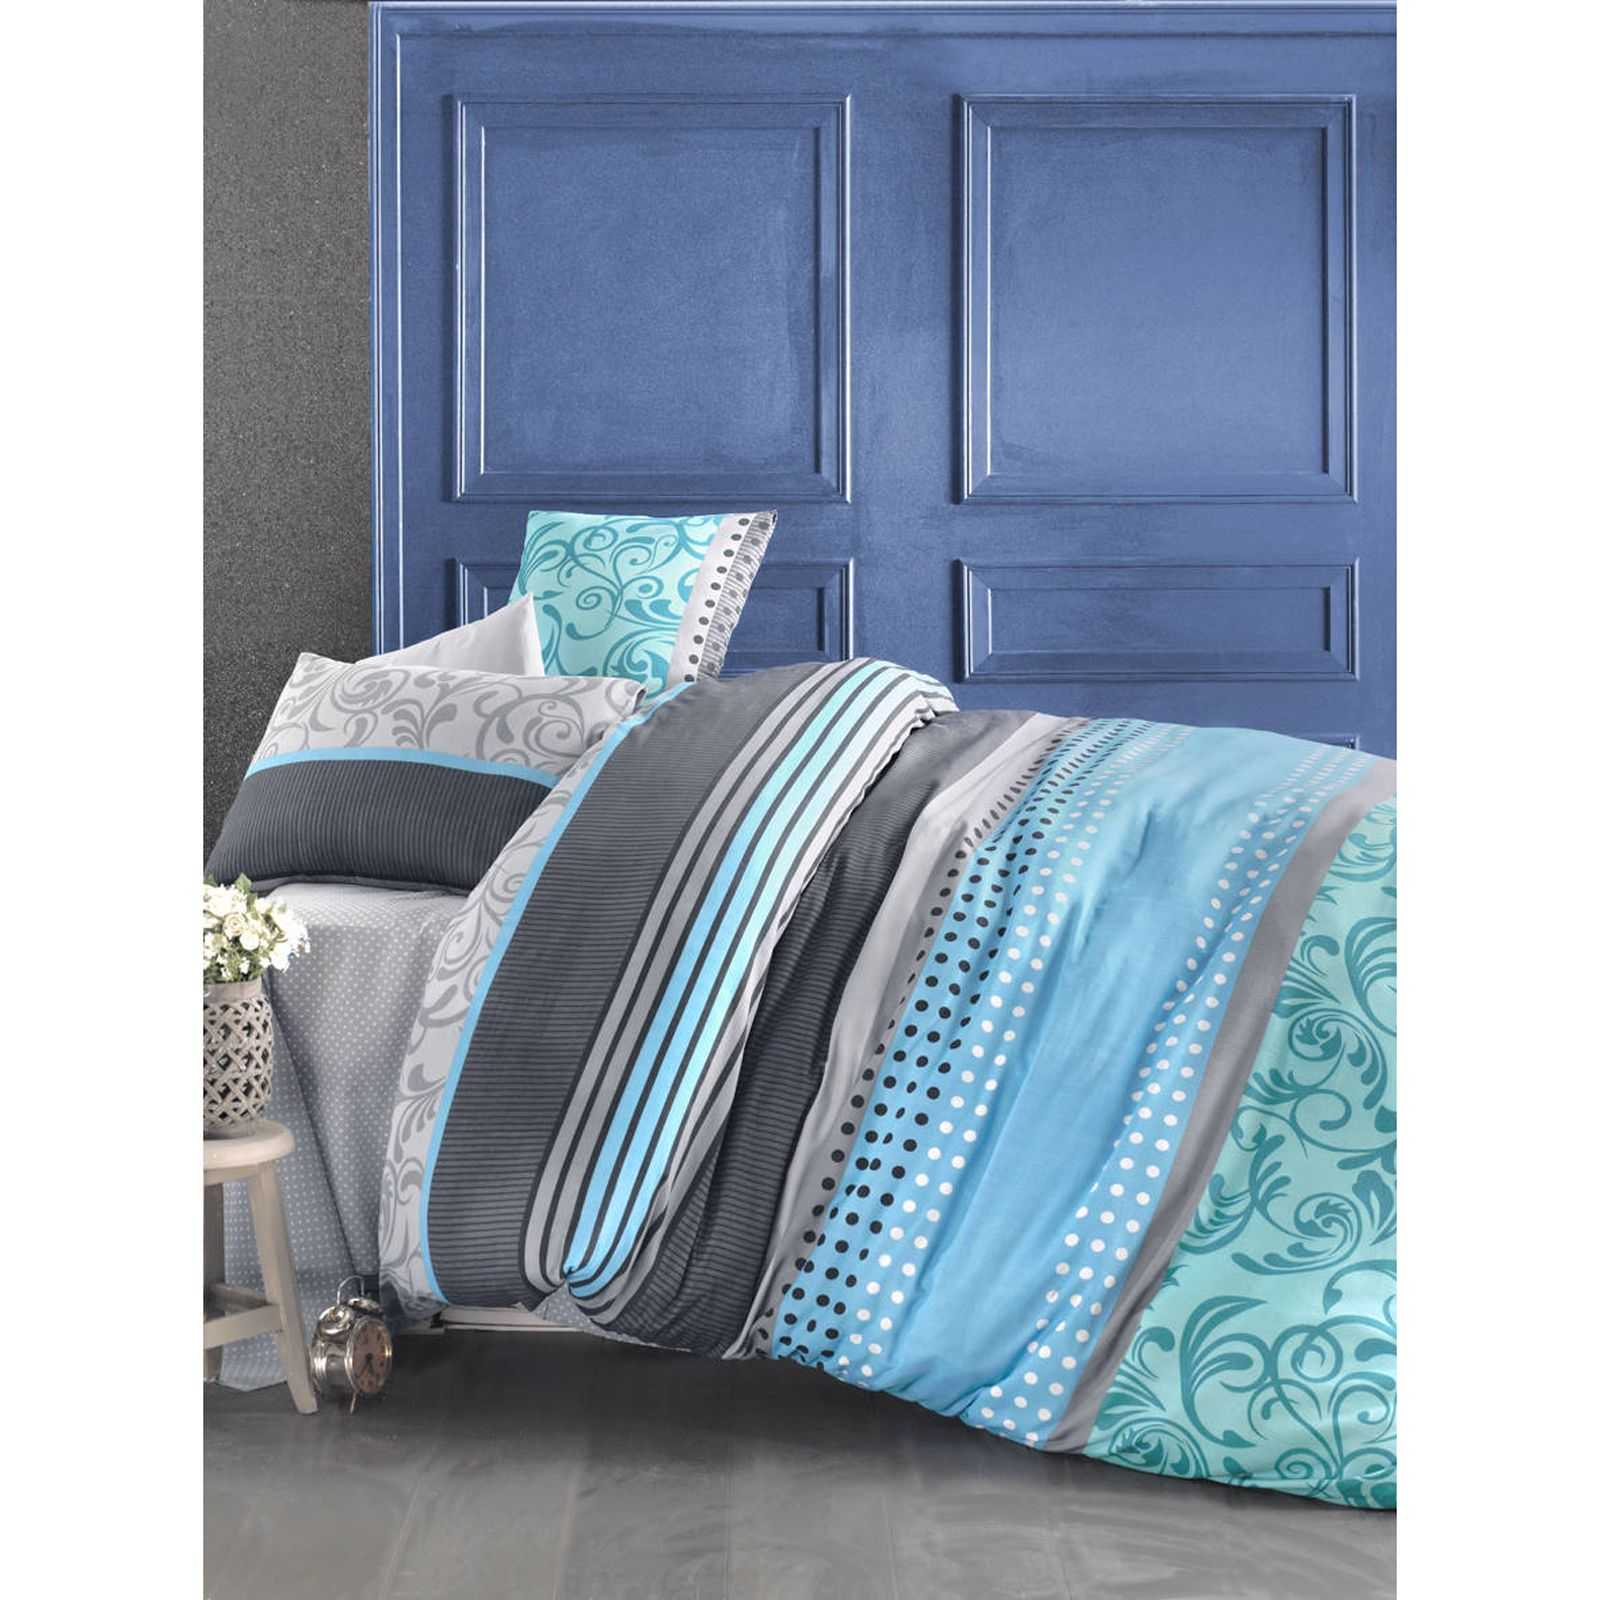 eponj home parure de lit bleu brandalley. Black Bedroom Furniture Sets. Home Design Ideas